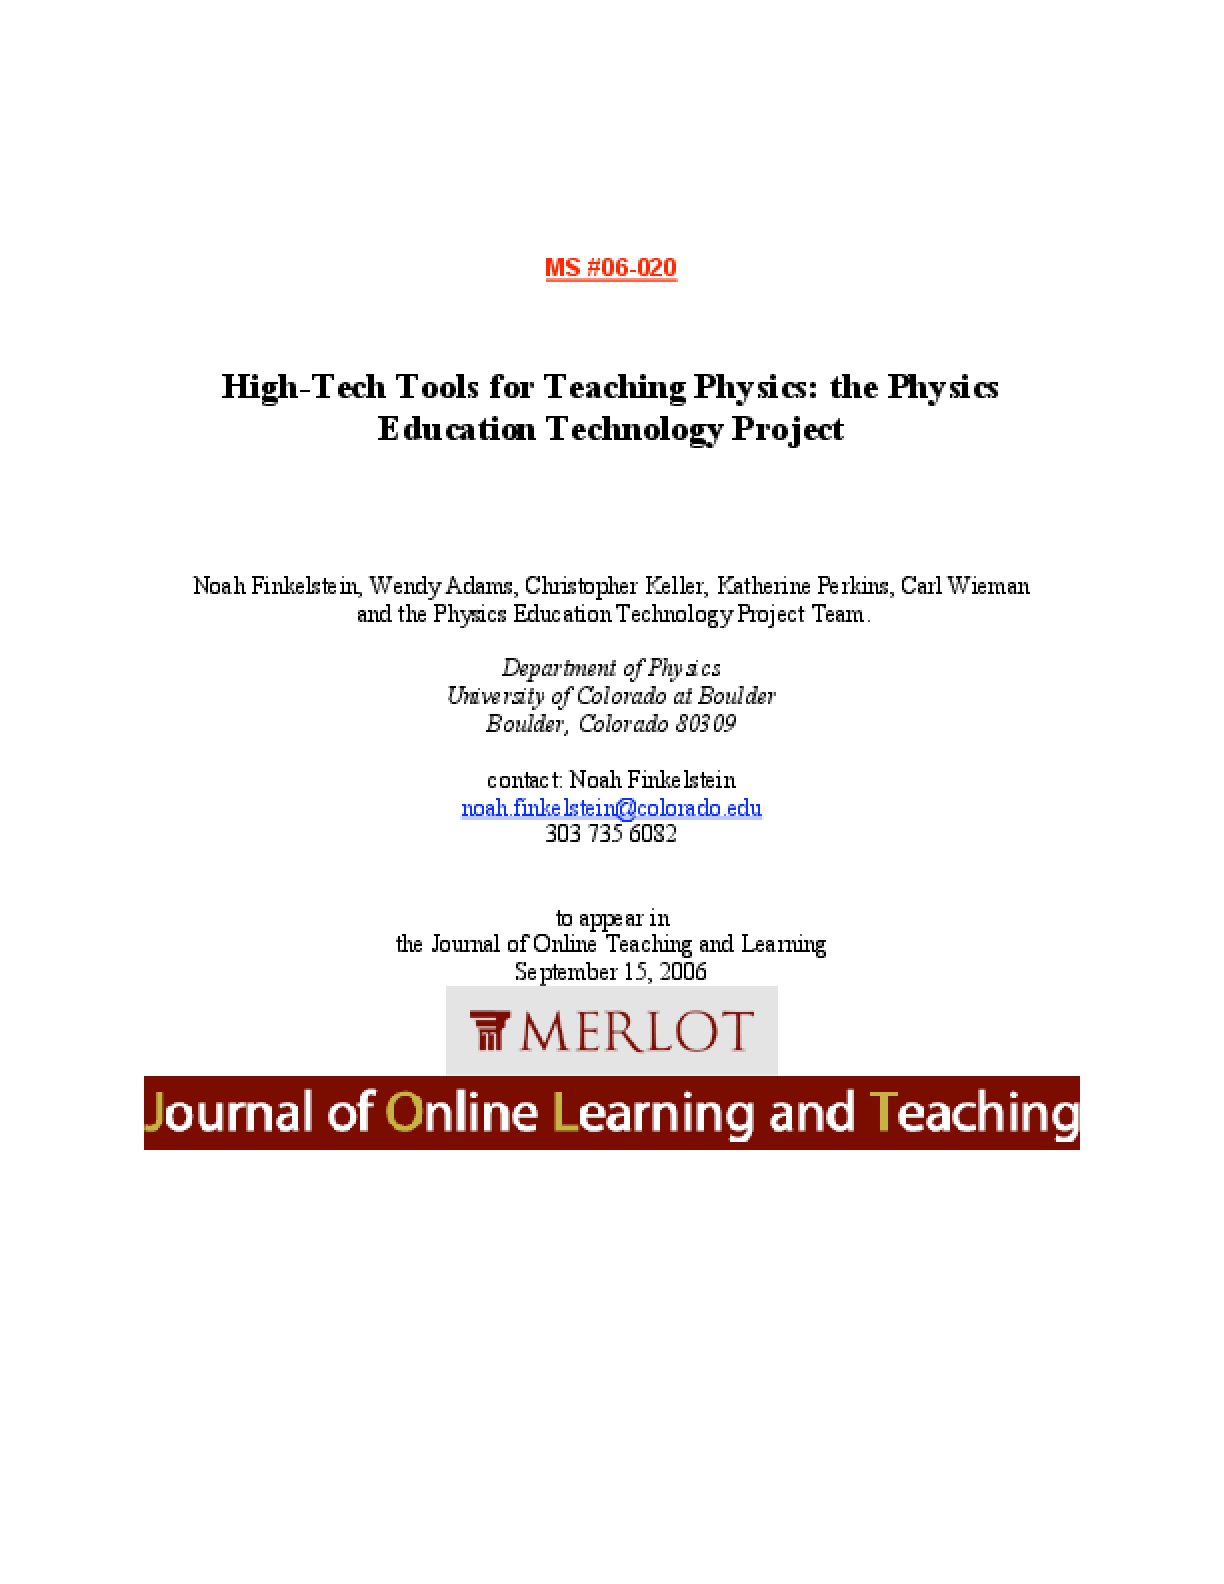 High-Tech Tools for Teaching Physics: the Physics Education Technology Project